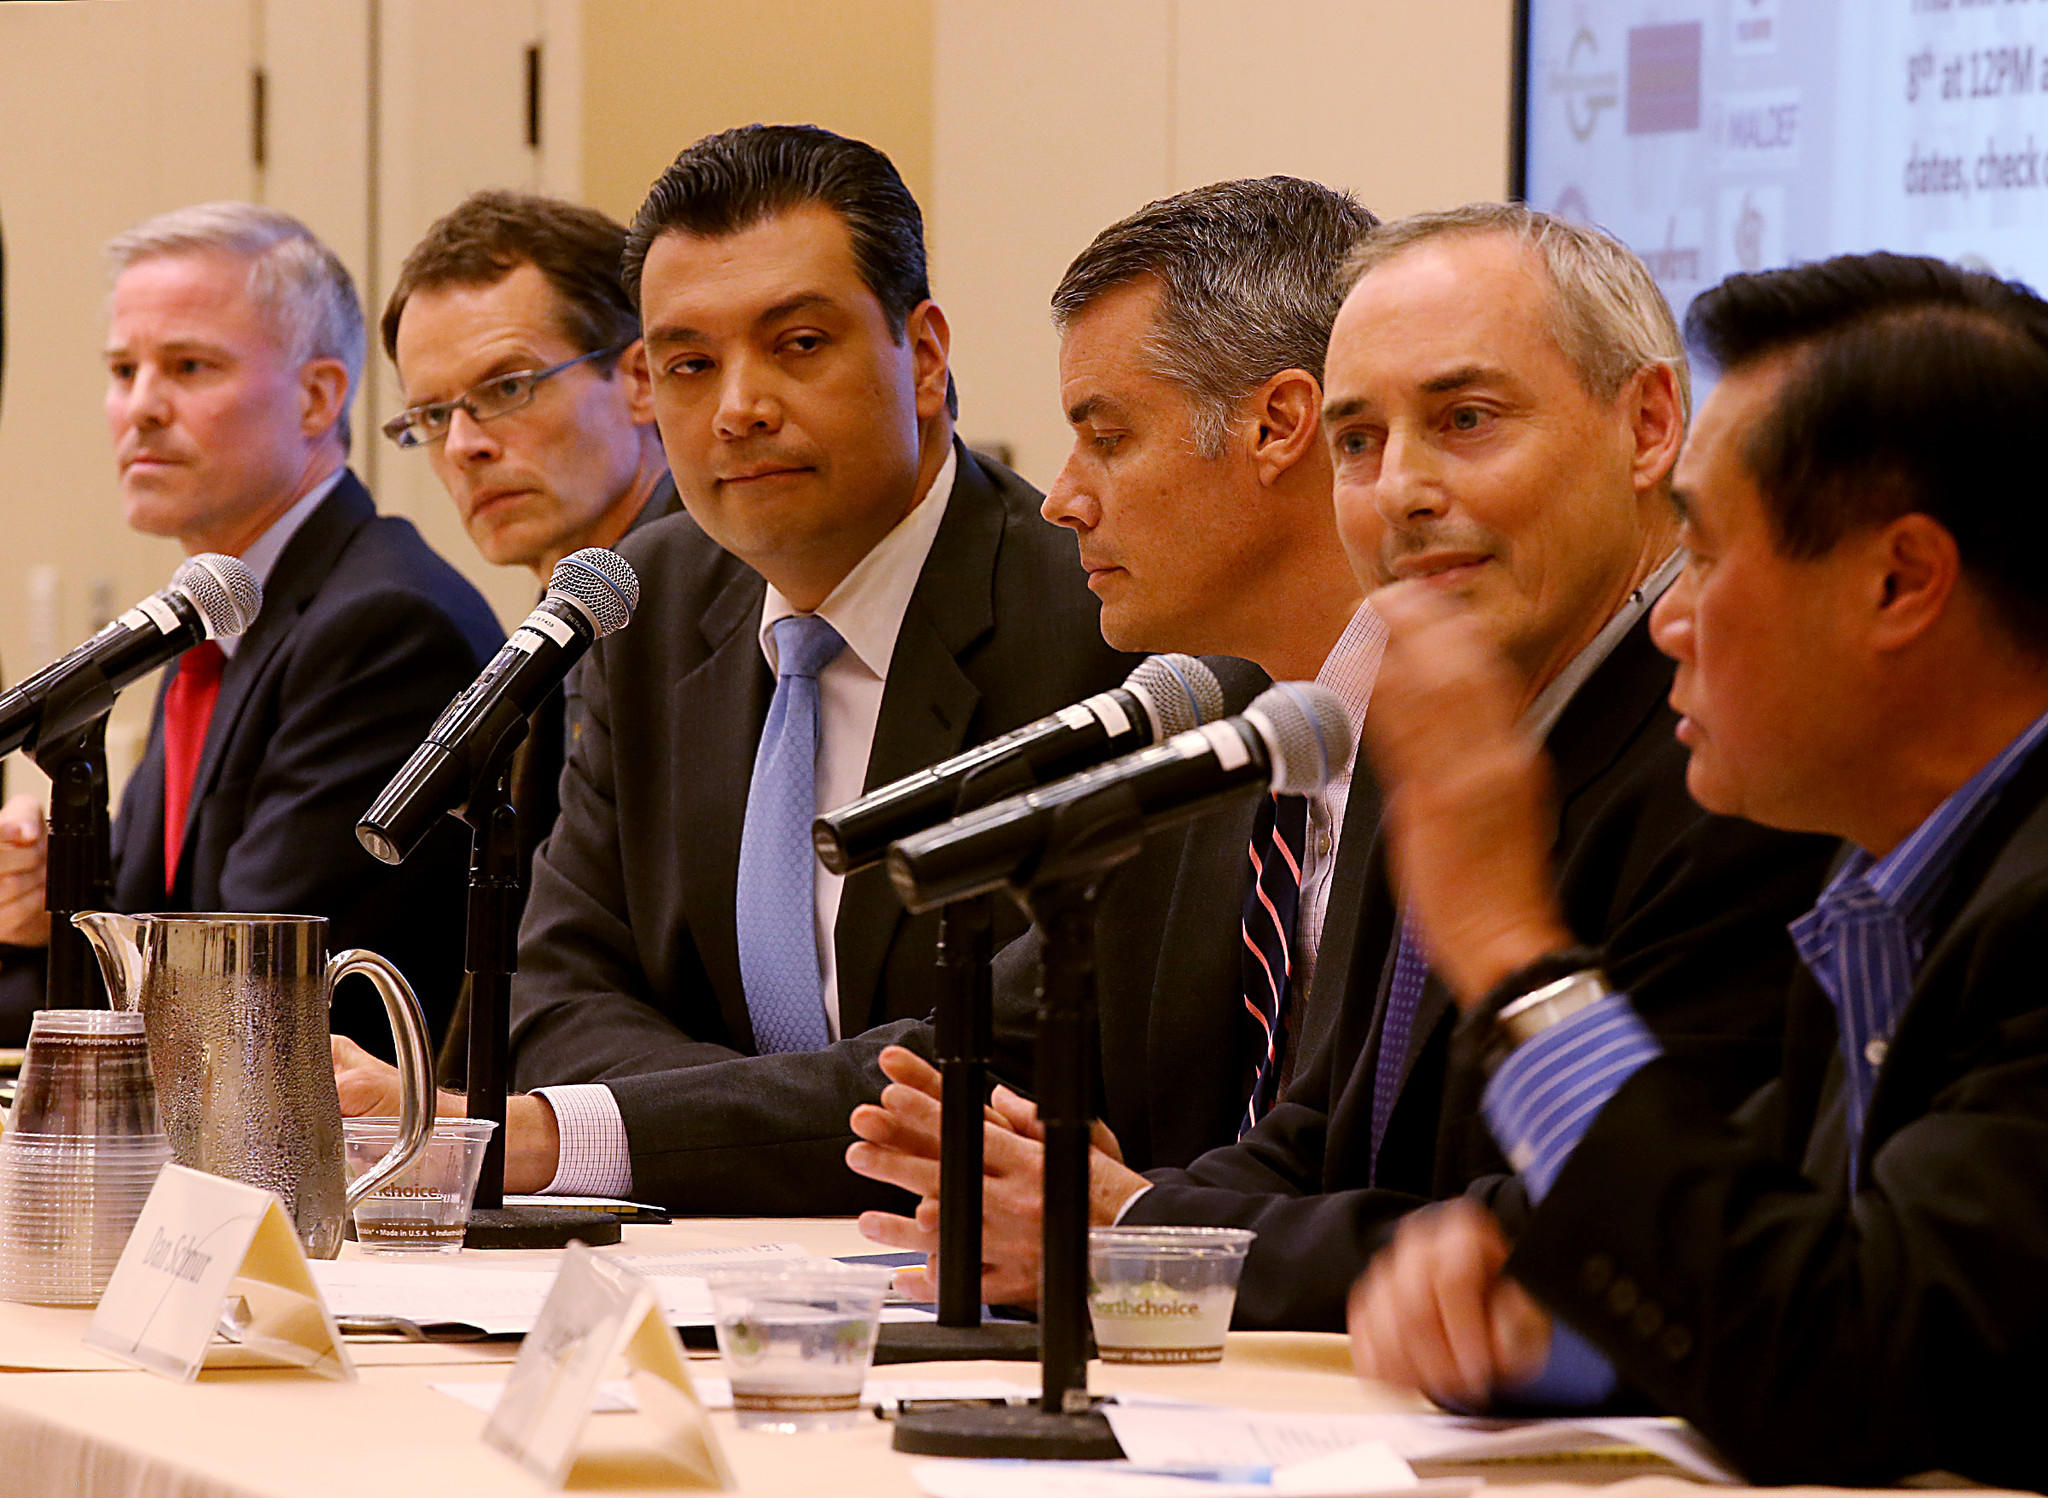 The crowded field of candidates for the office of secretary of state of California includes, from left: Derek Cressman, David S. Curtis, Alex Padilla, Pete Peterson, Dan Schnur and Leland Yee. The candidates are shown at a forum in downtown Los Angeles on March 3.